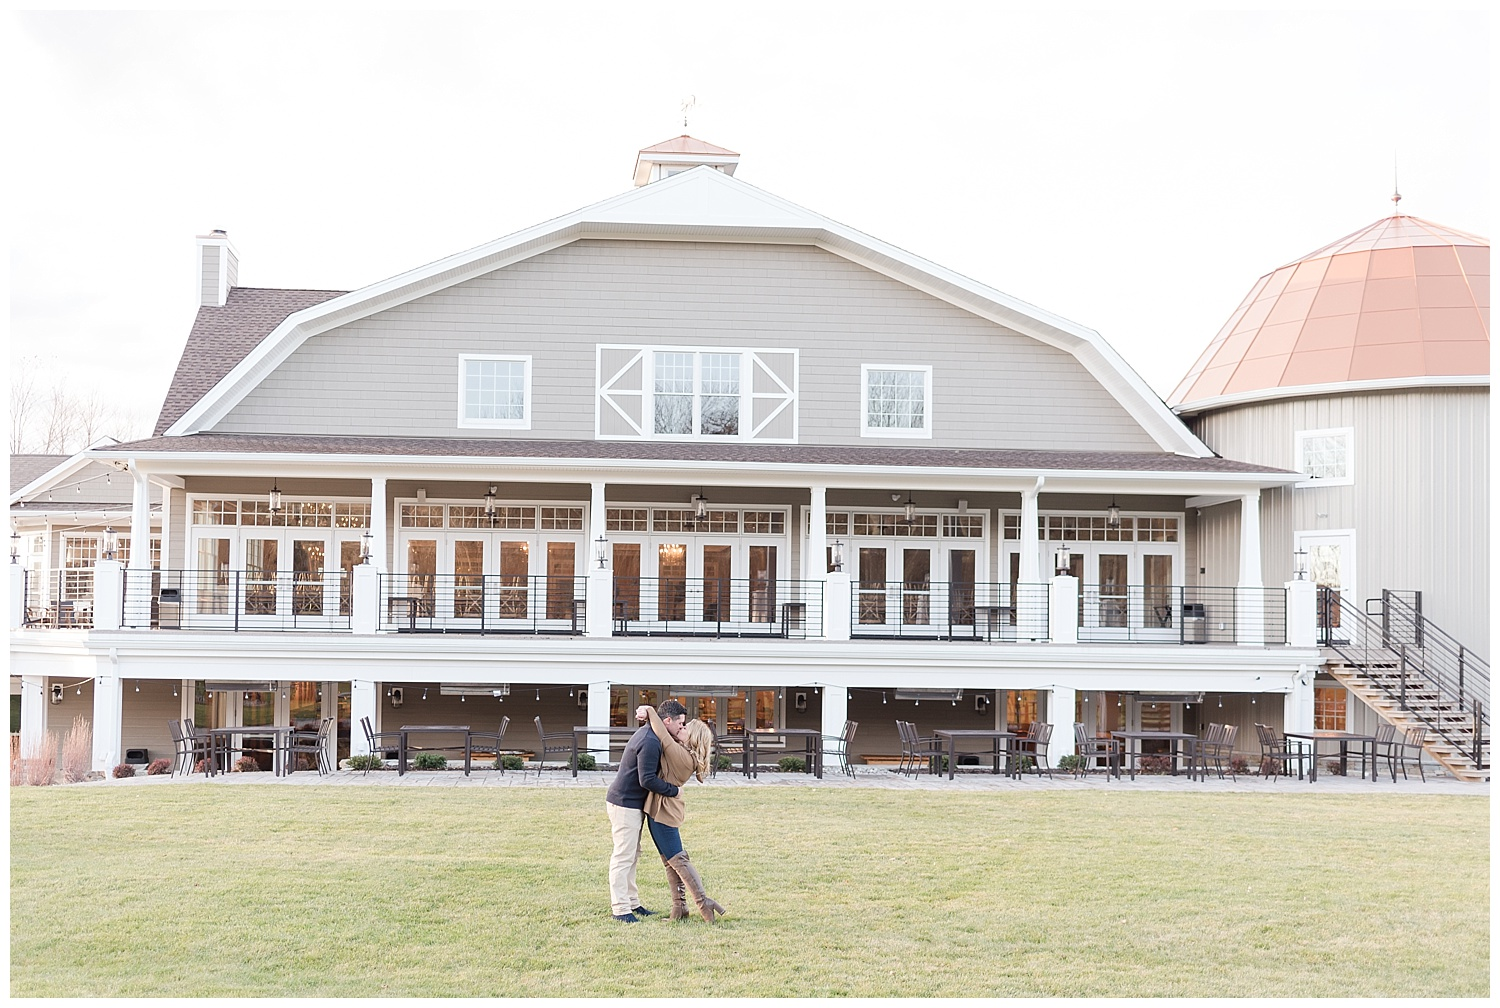 New Jersey Weddings | Bear Brook Valley | Fredon Township, New Jersey | www.redoakweddings.com